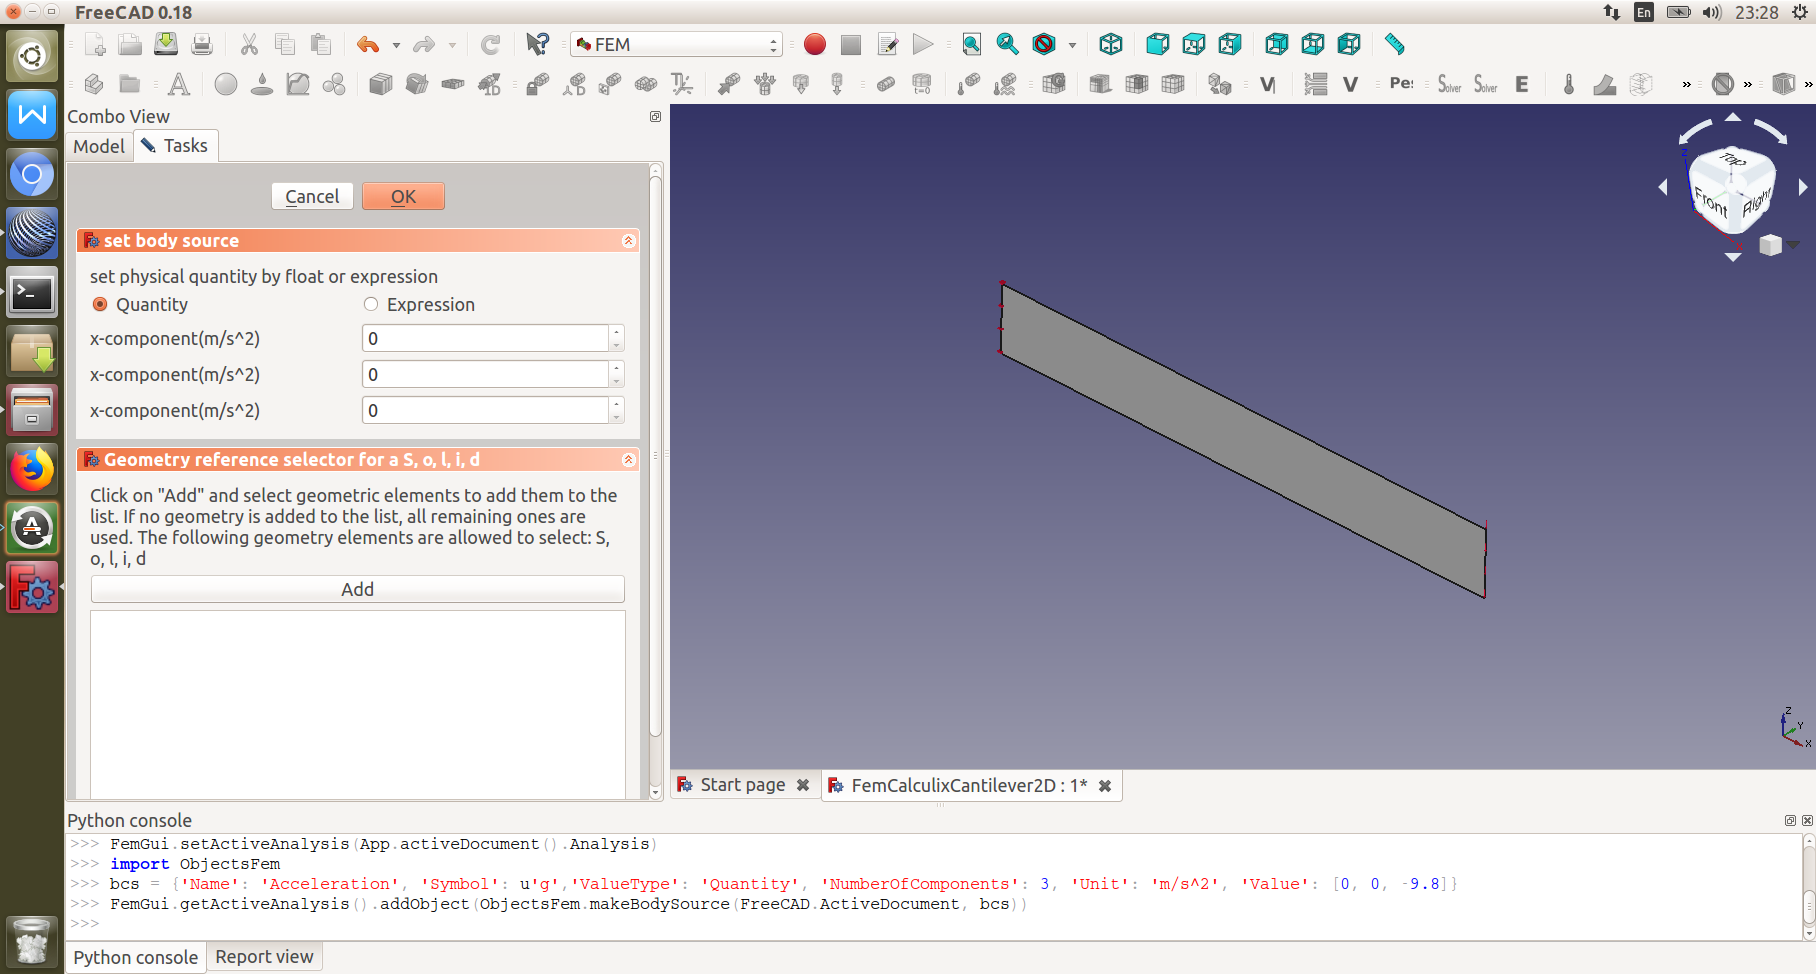 FreecAD_generalised_bodysource.png